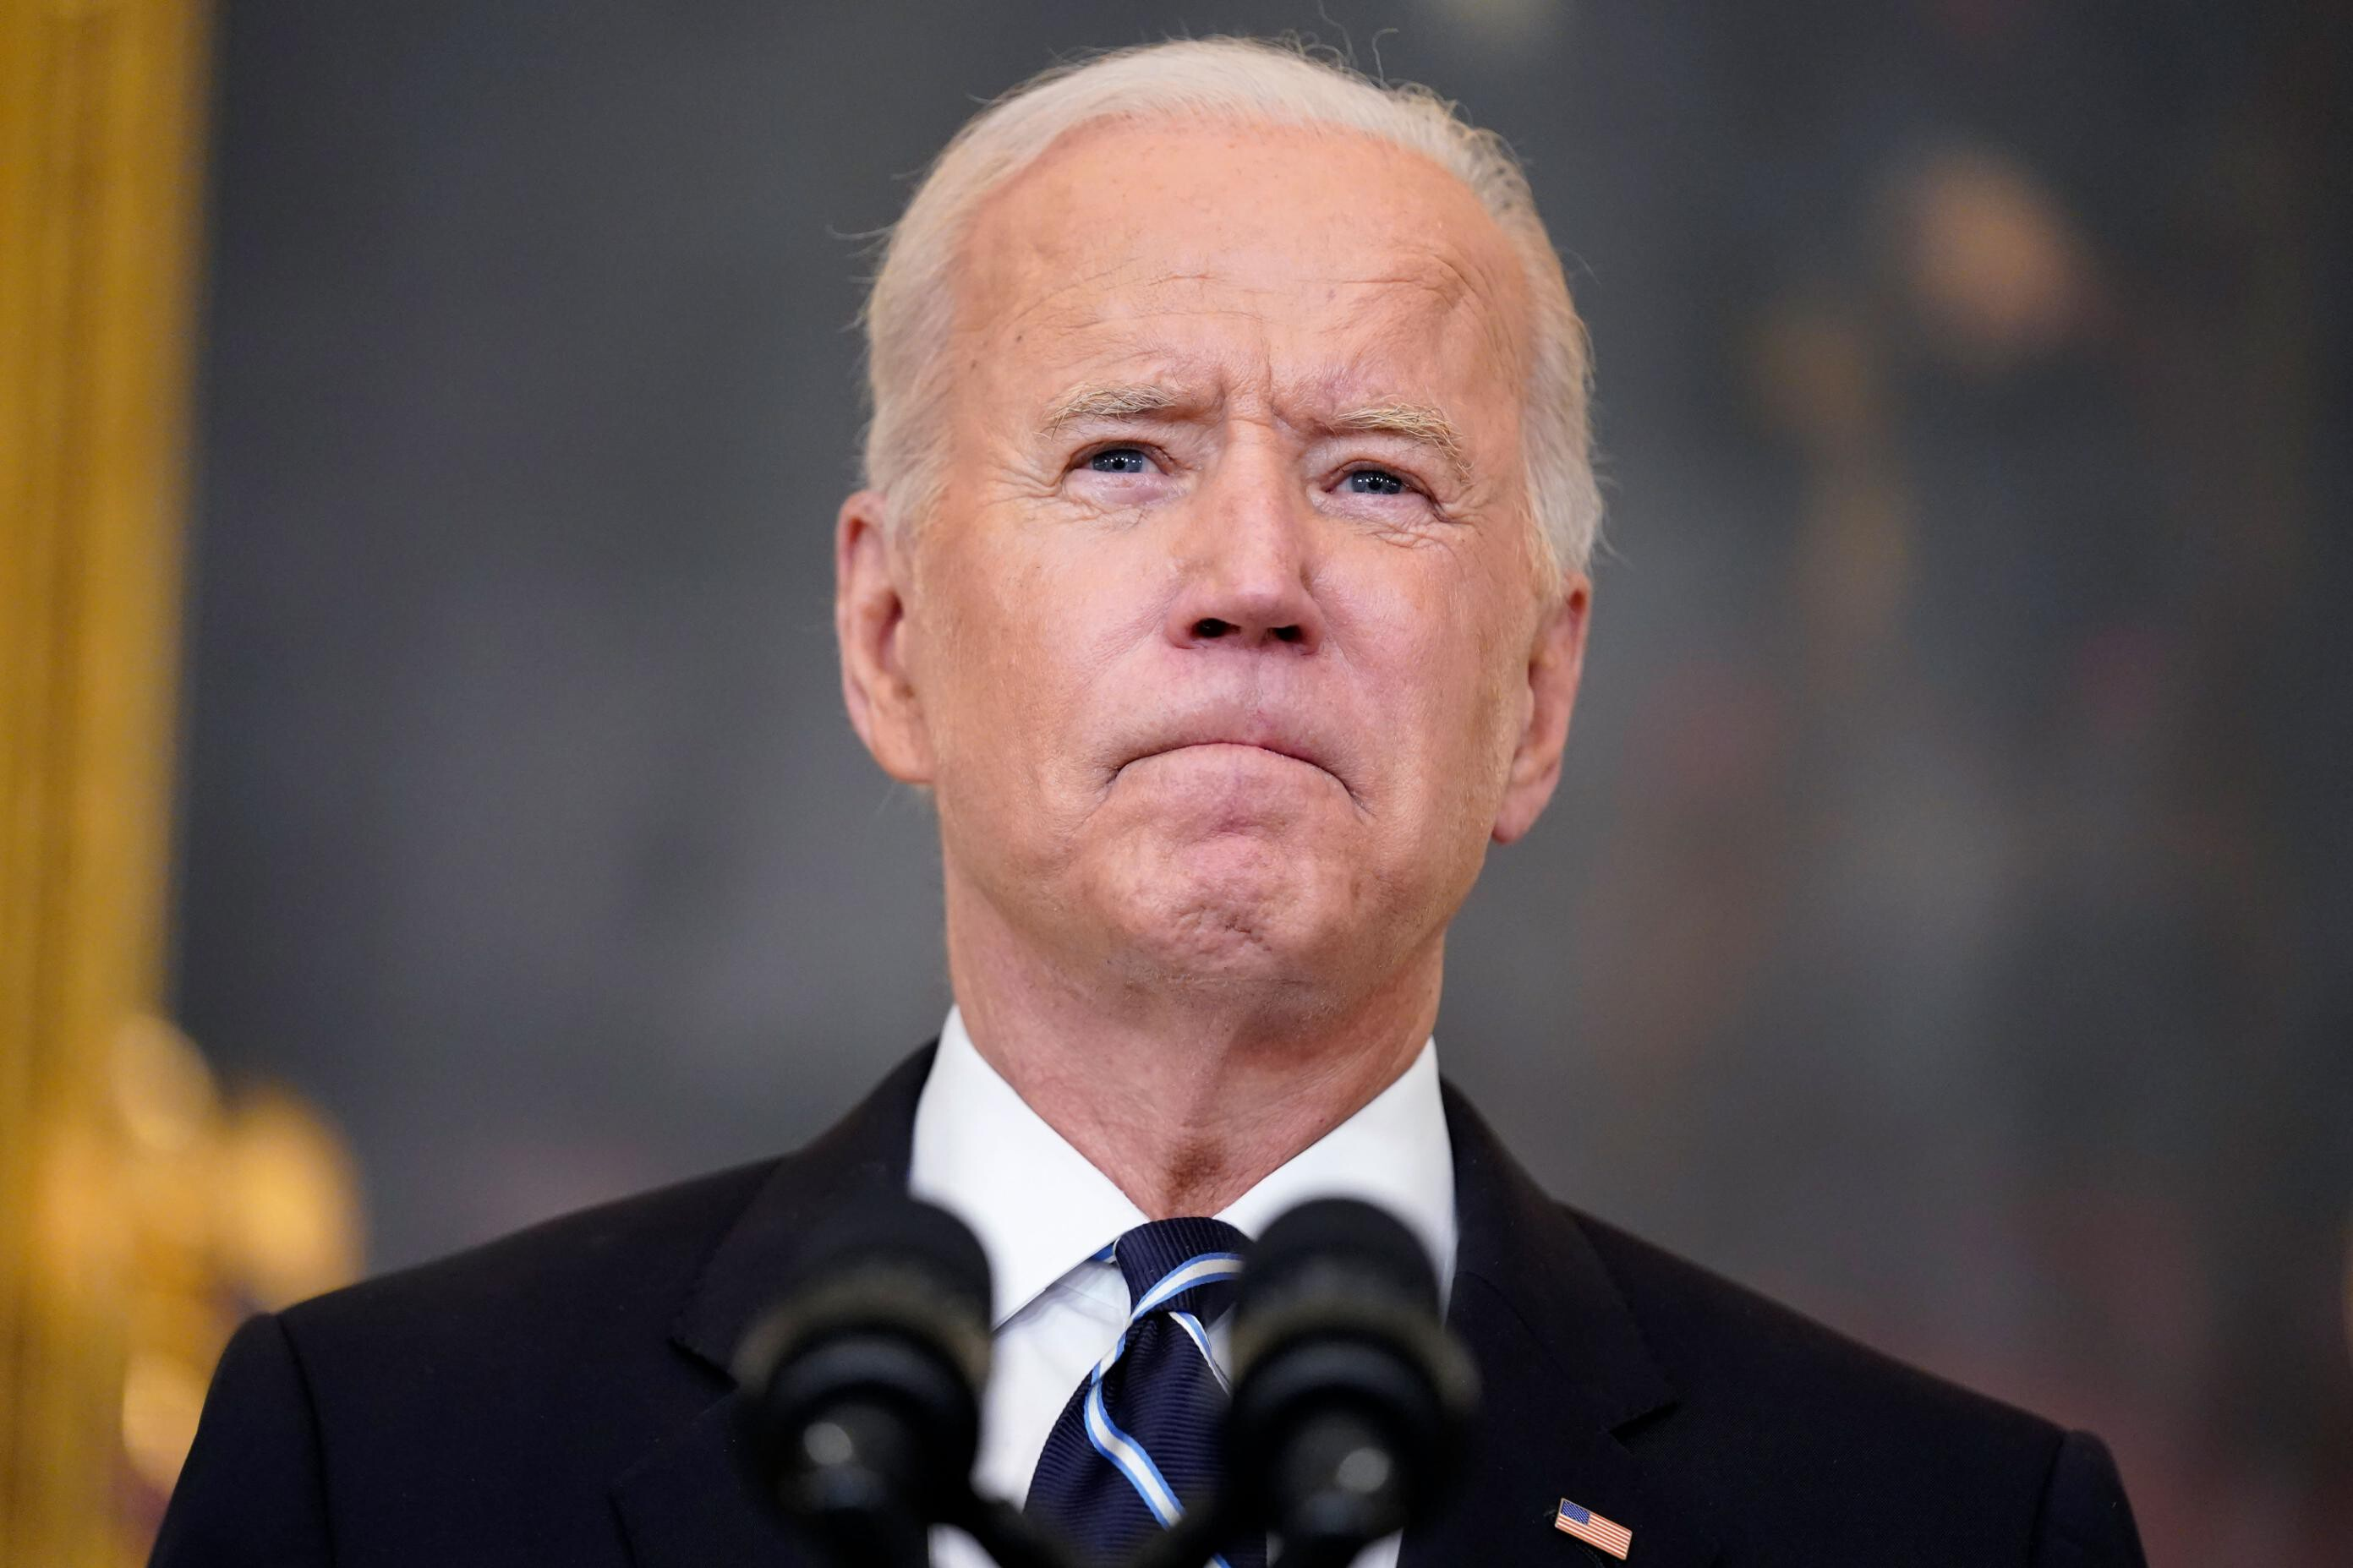 Biden set to address world leaders at the UN General Assembly